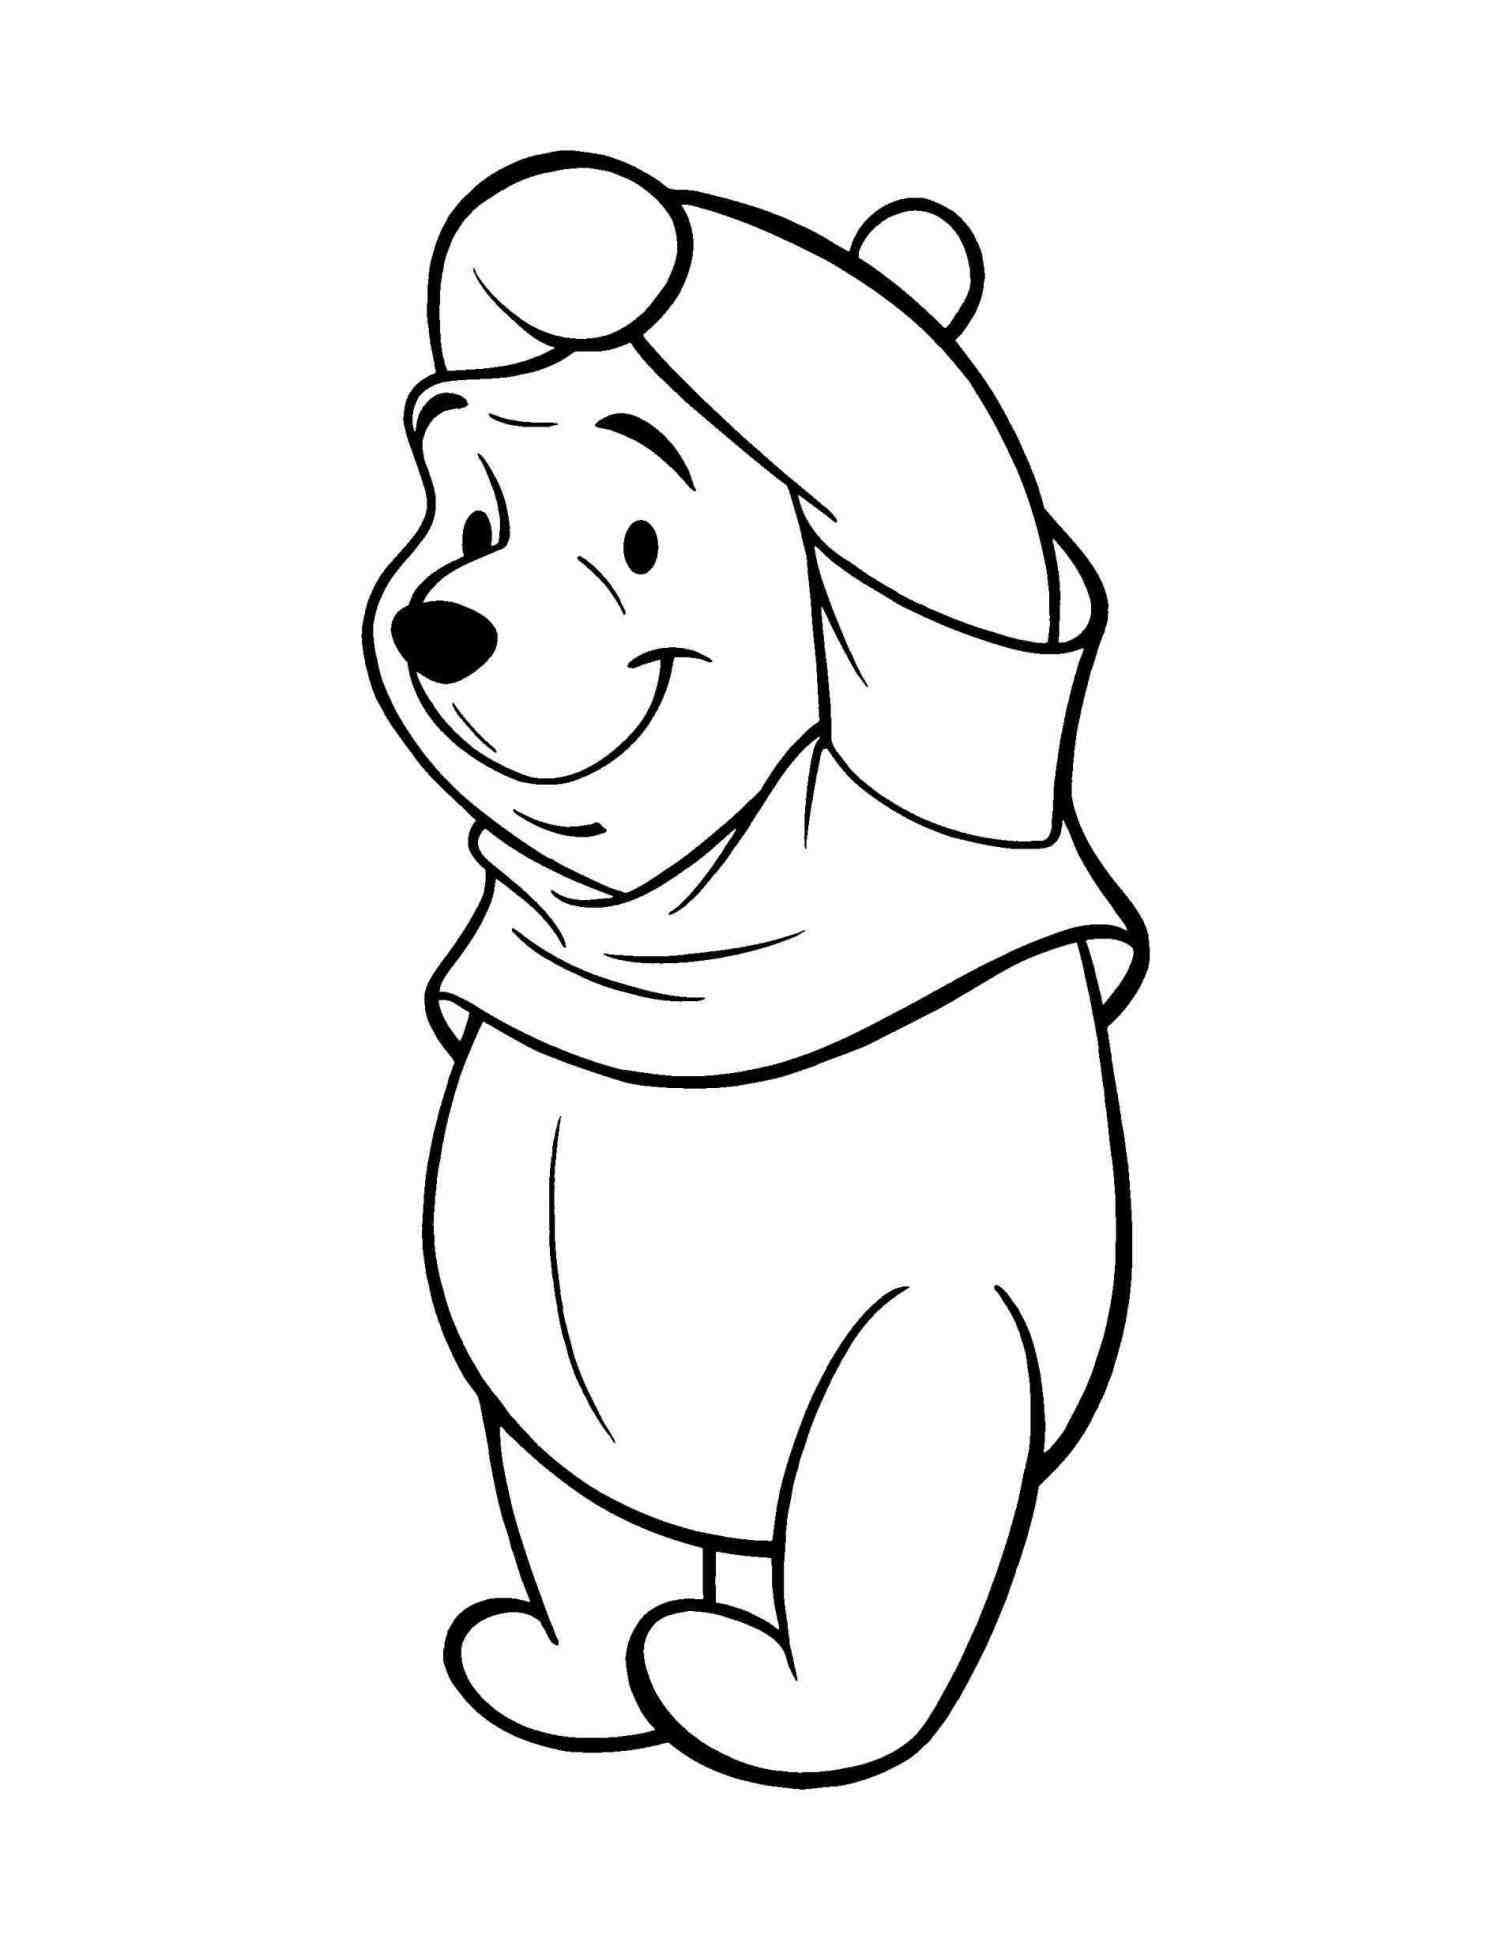 disney characters easy to draw snow white sketch drawing tips tricks things to draw to disney characters draw easy